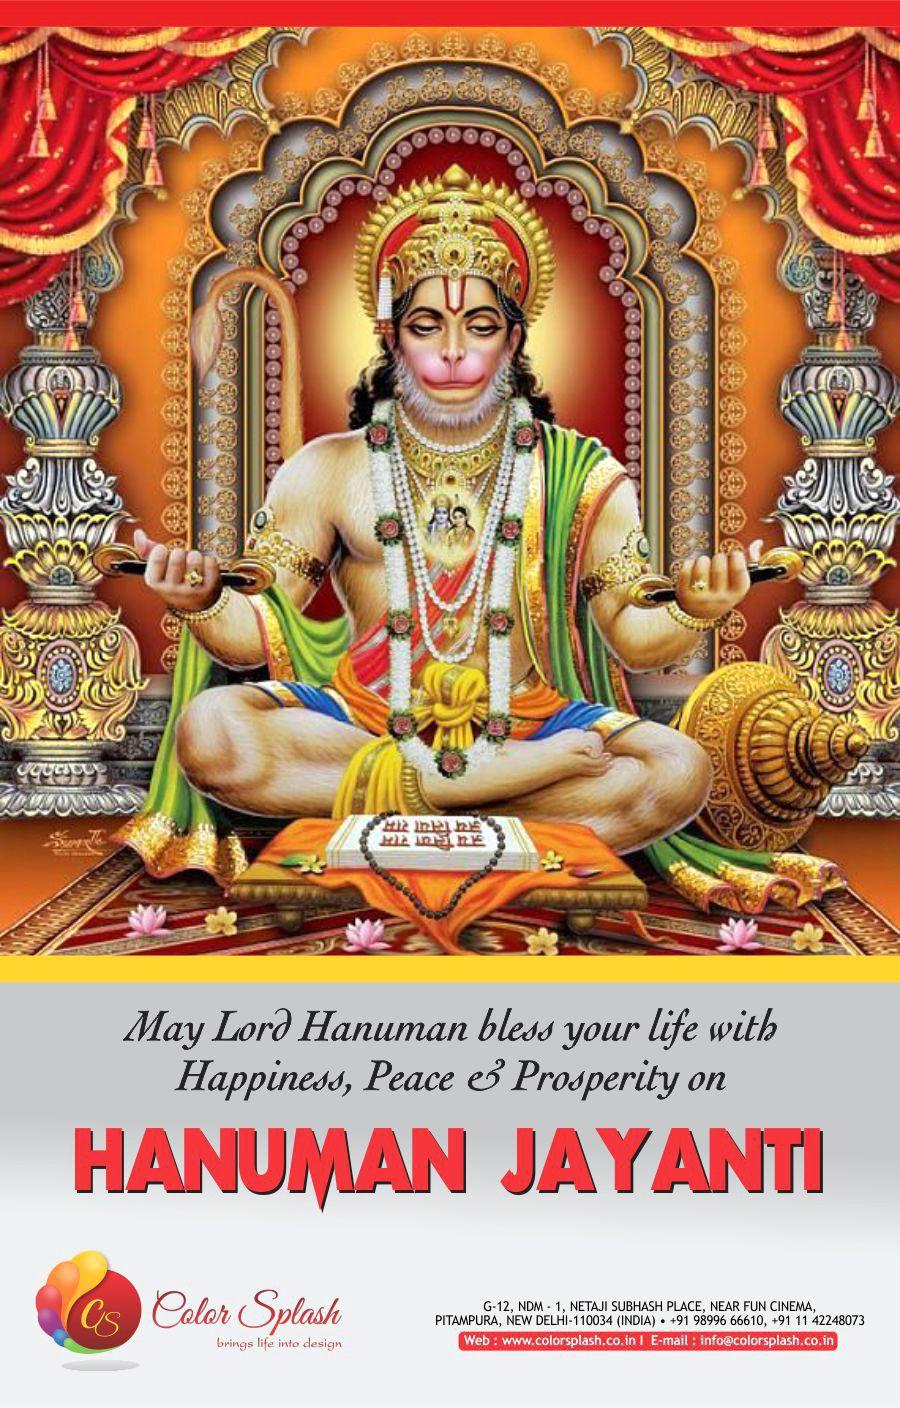 May lord Hanuman shower you with his choicest blessings on Hanuman Jayanti and always.. #HappyHanumanJayanti